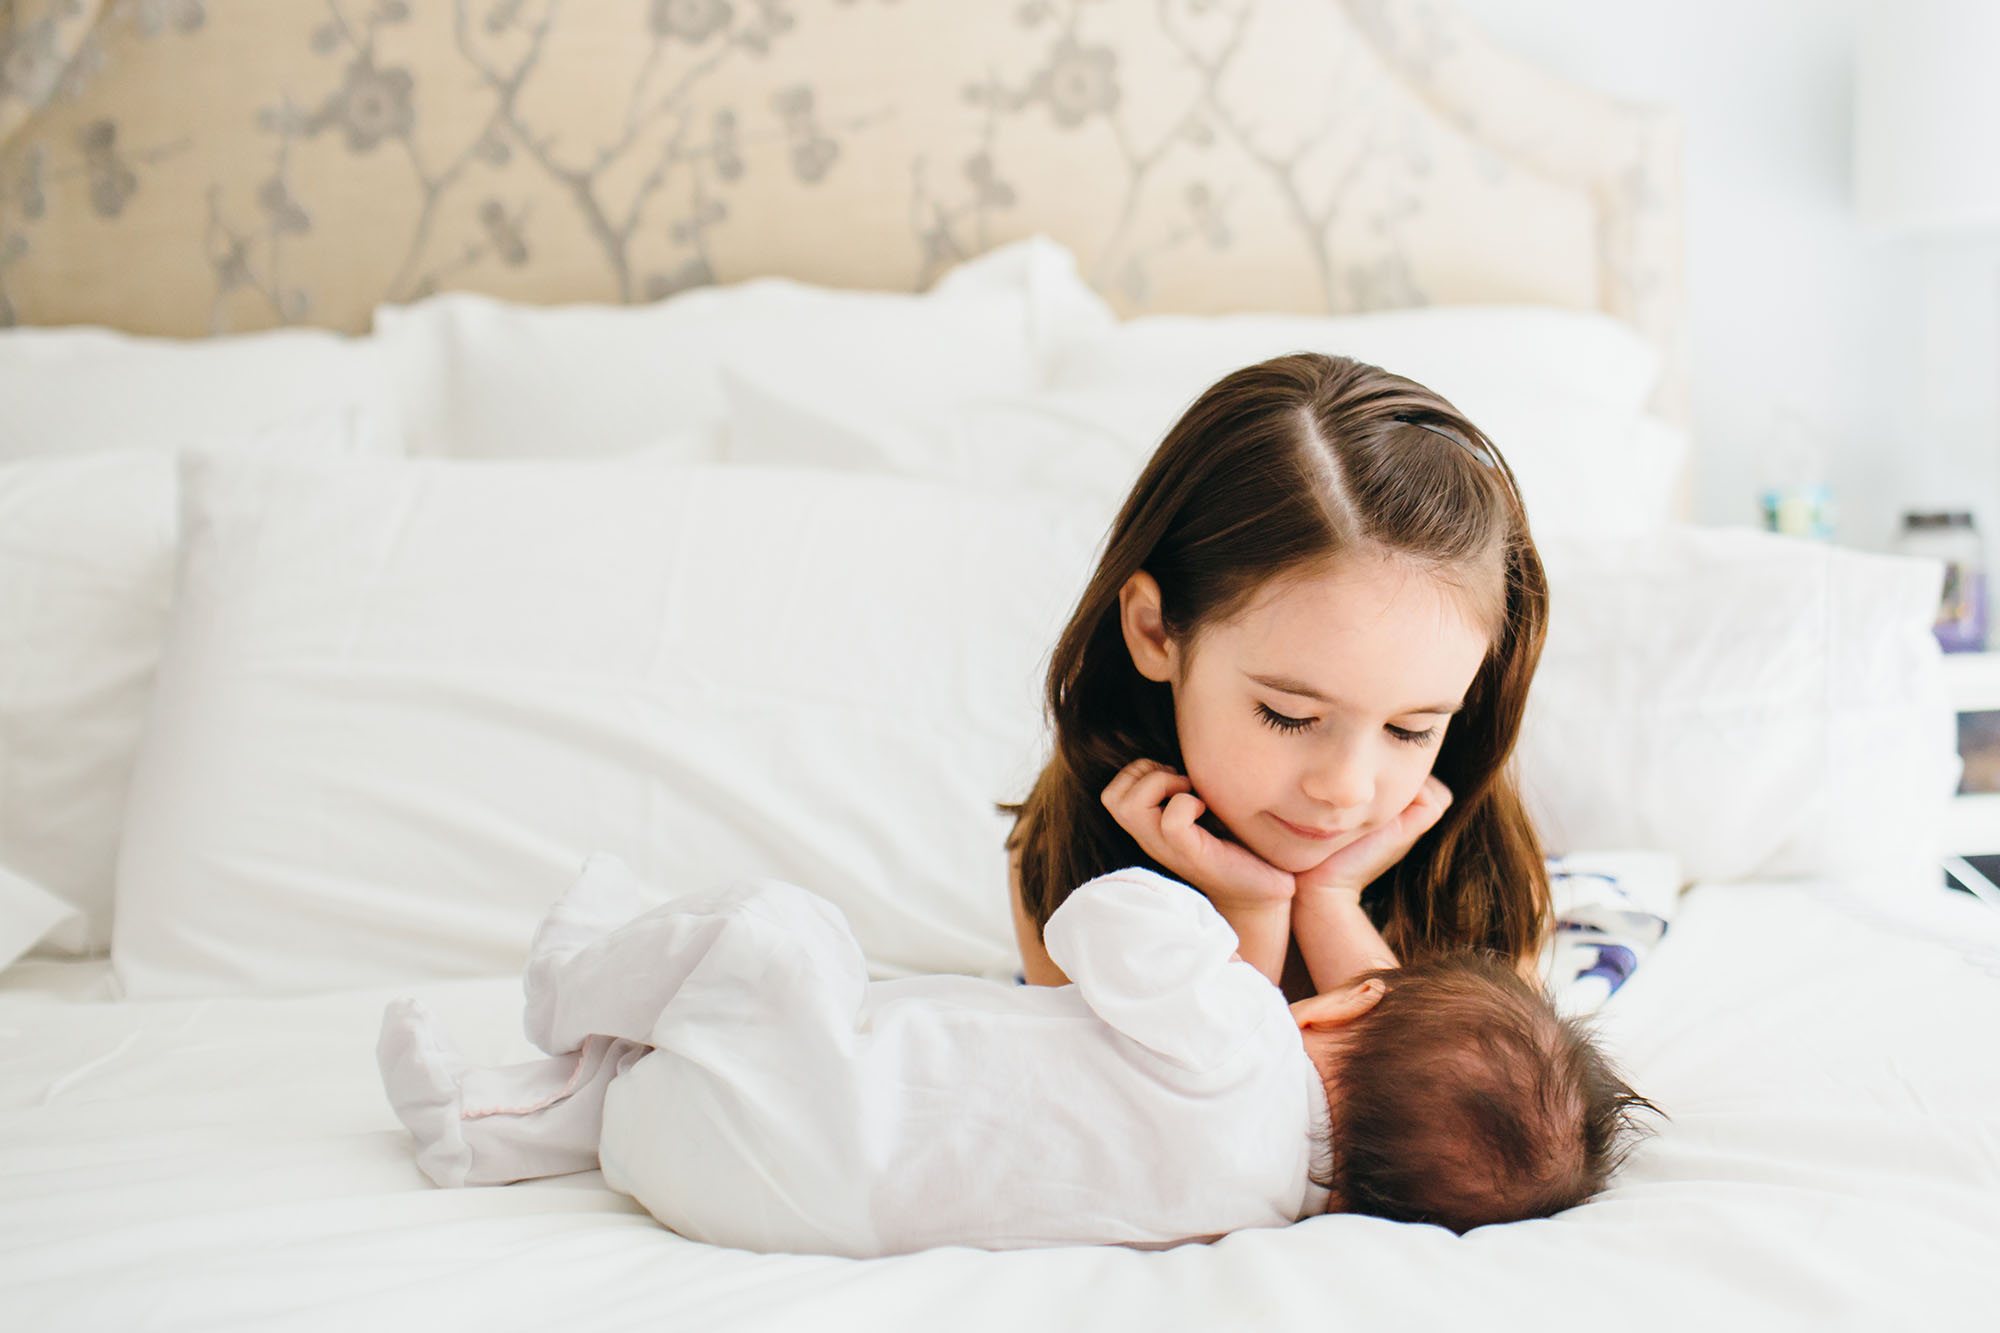 newborn lifestyle photography, siblings, big sister, baby, master bedroom